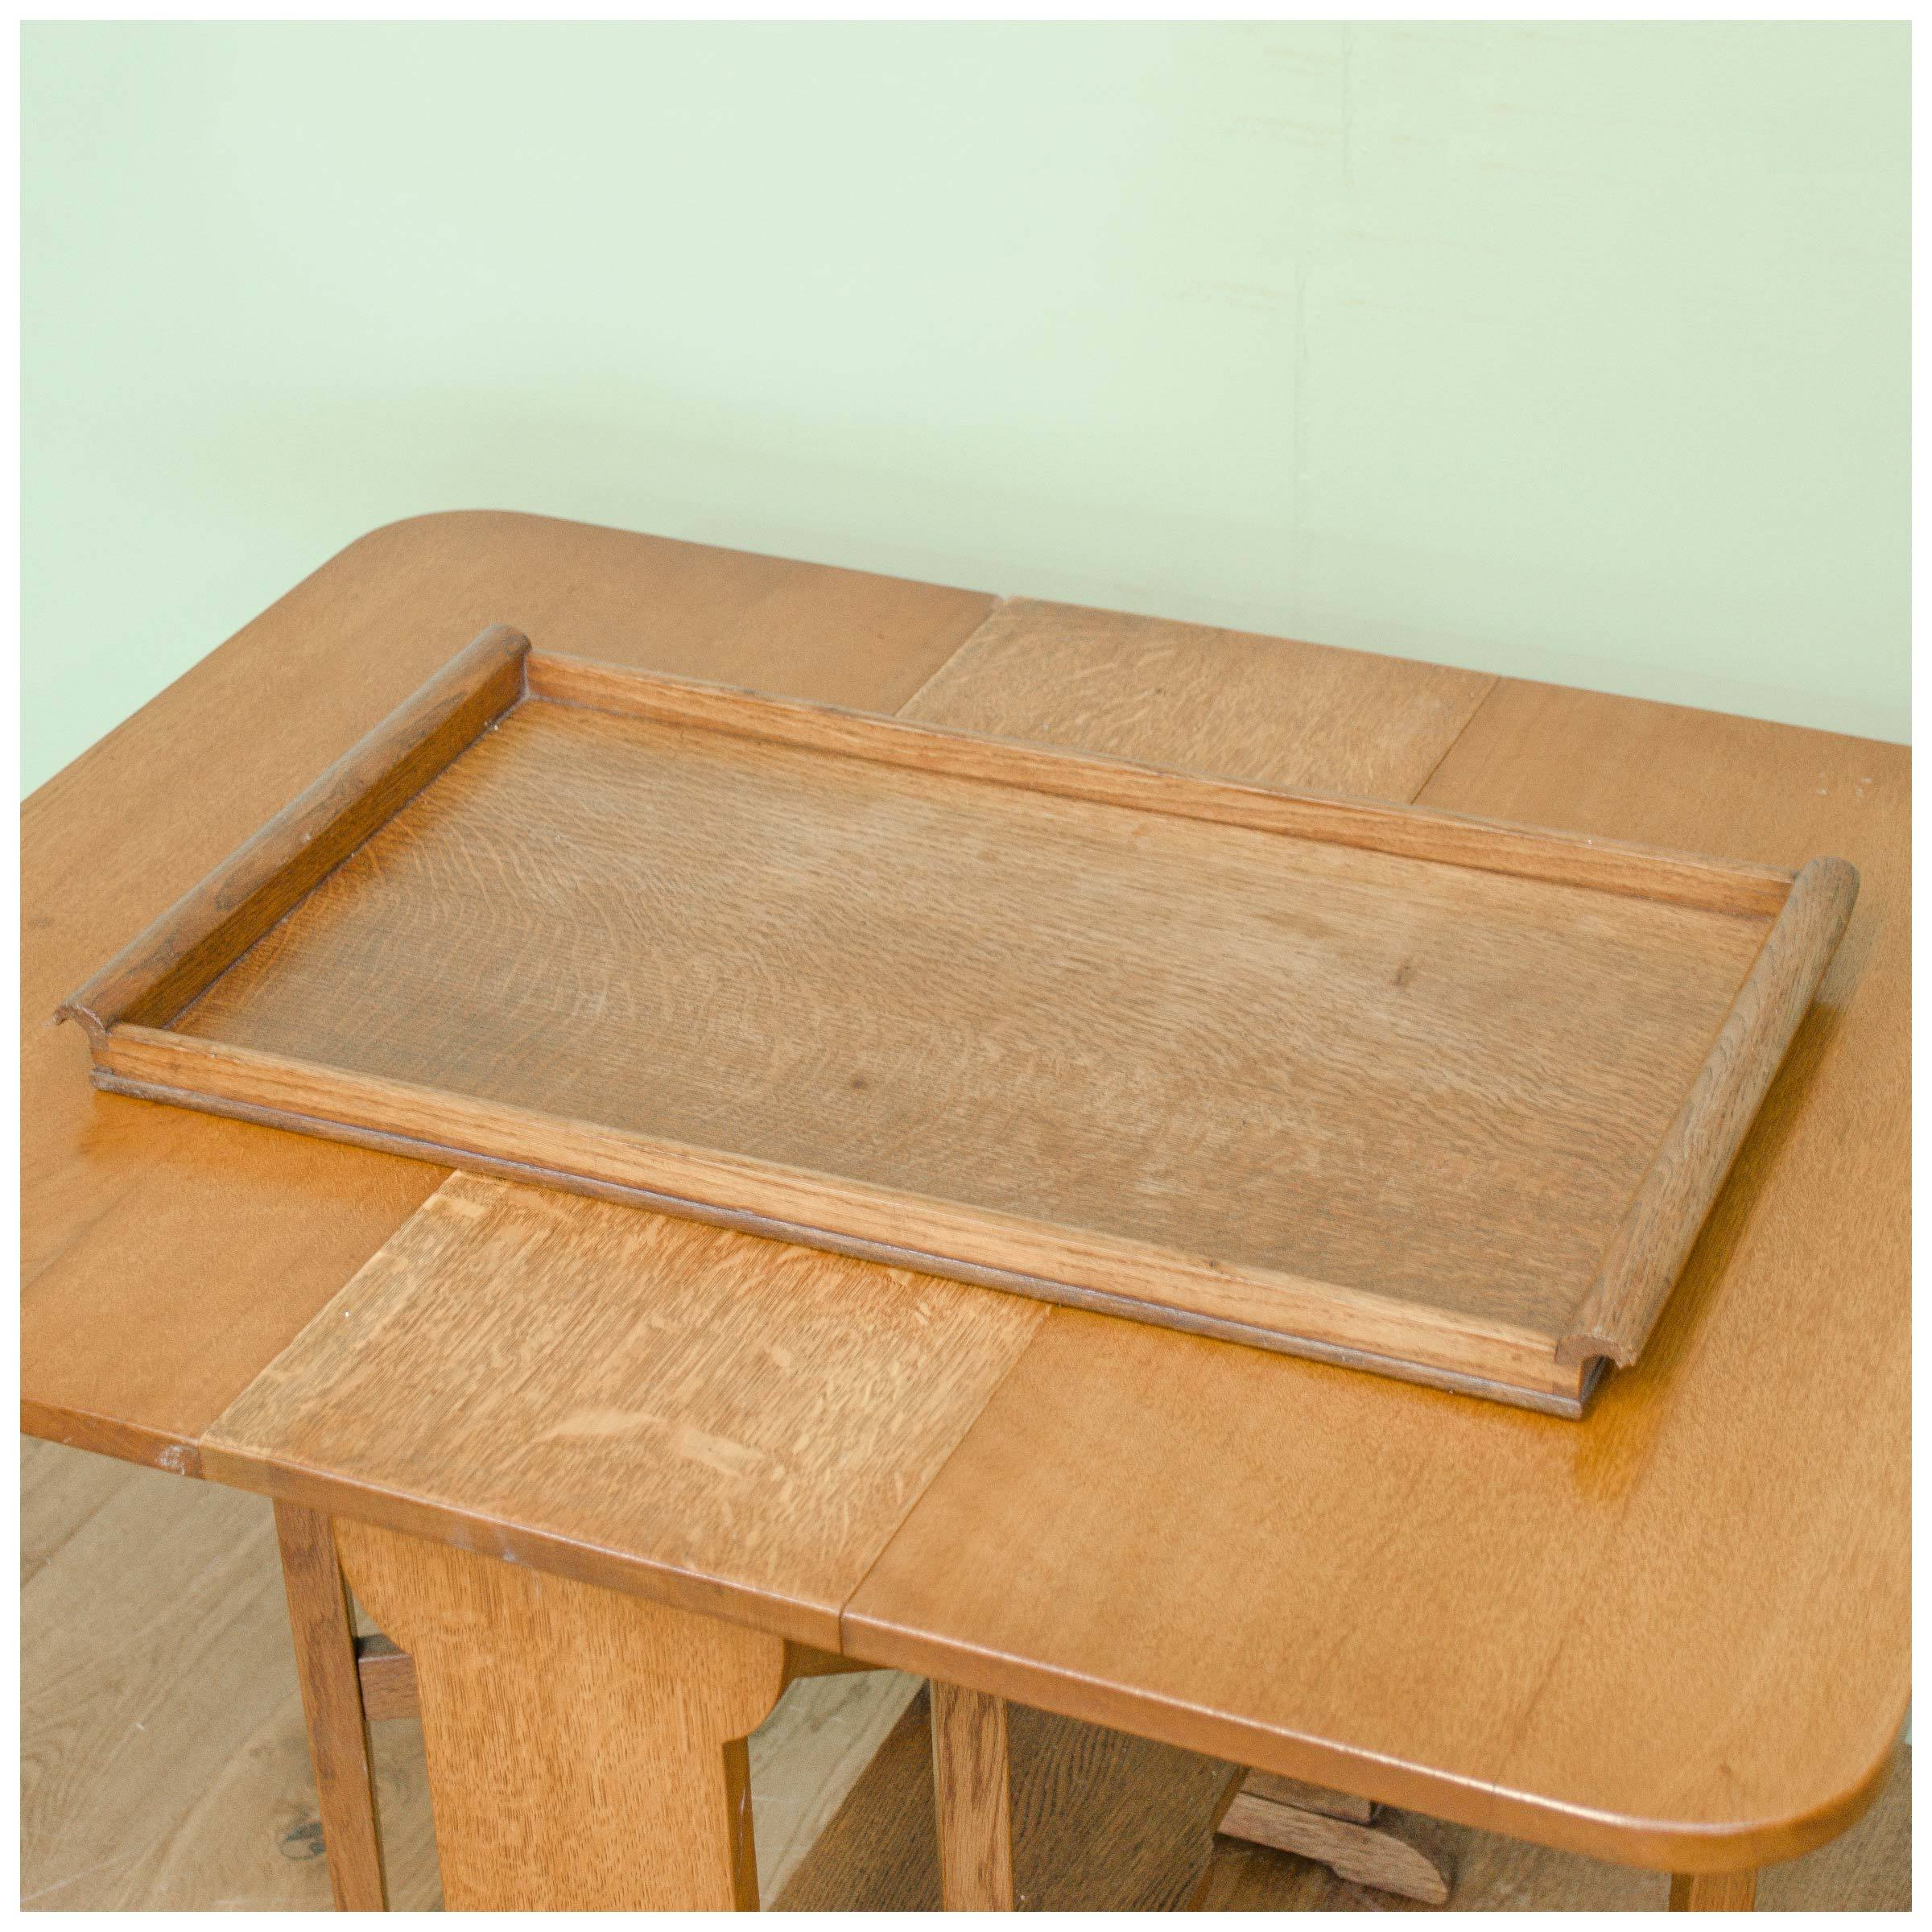 arts-and-crafts-oak-tray-by-arthur-w-simpson-the-handicrafts-kendal-b0020183h.jpg